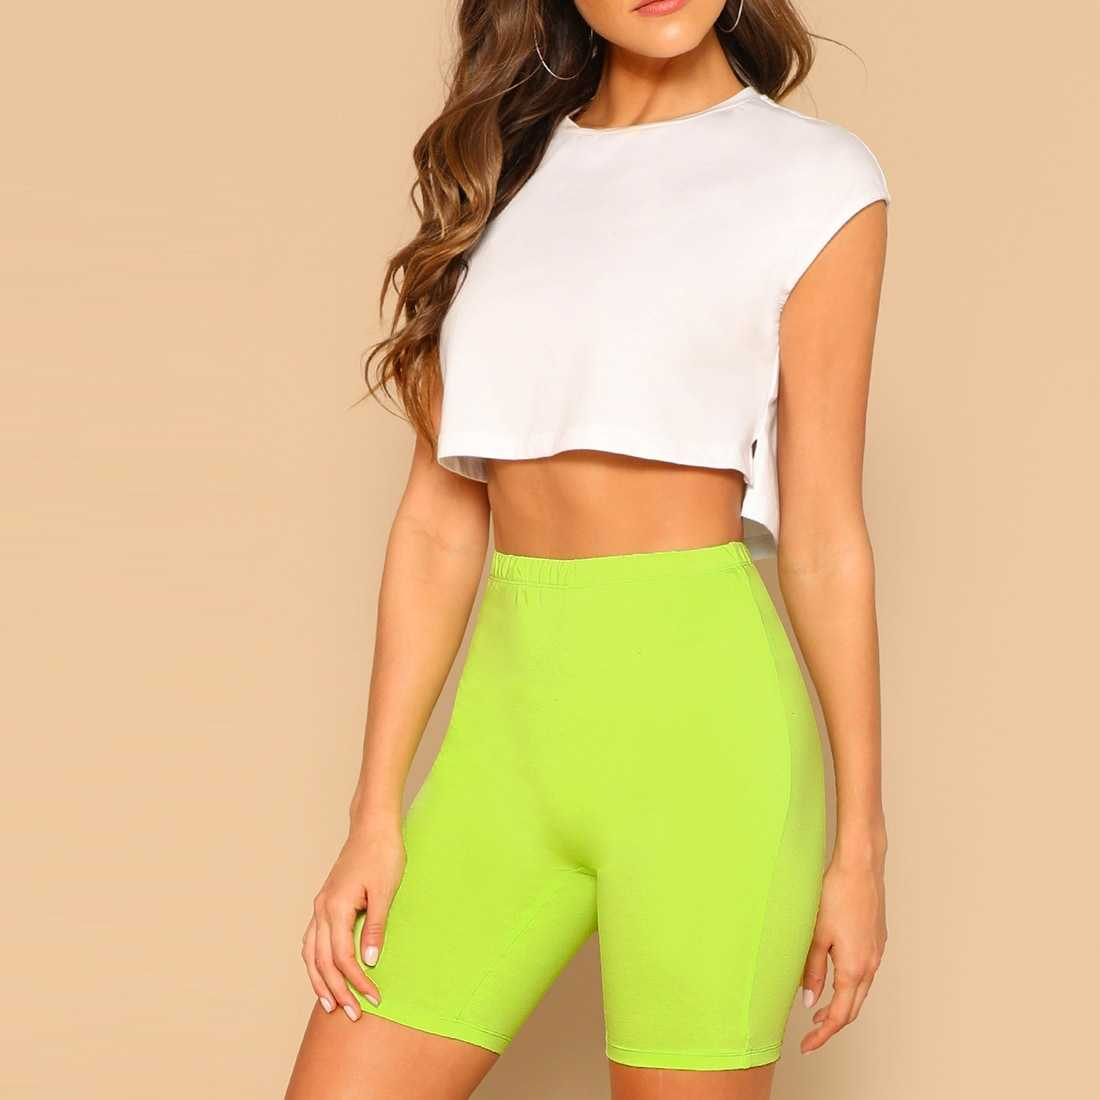 Neon Lime Elastic Waist Leggings Shorts in Green Bright by ROMWE on GOOFASH